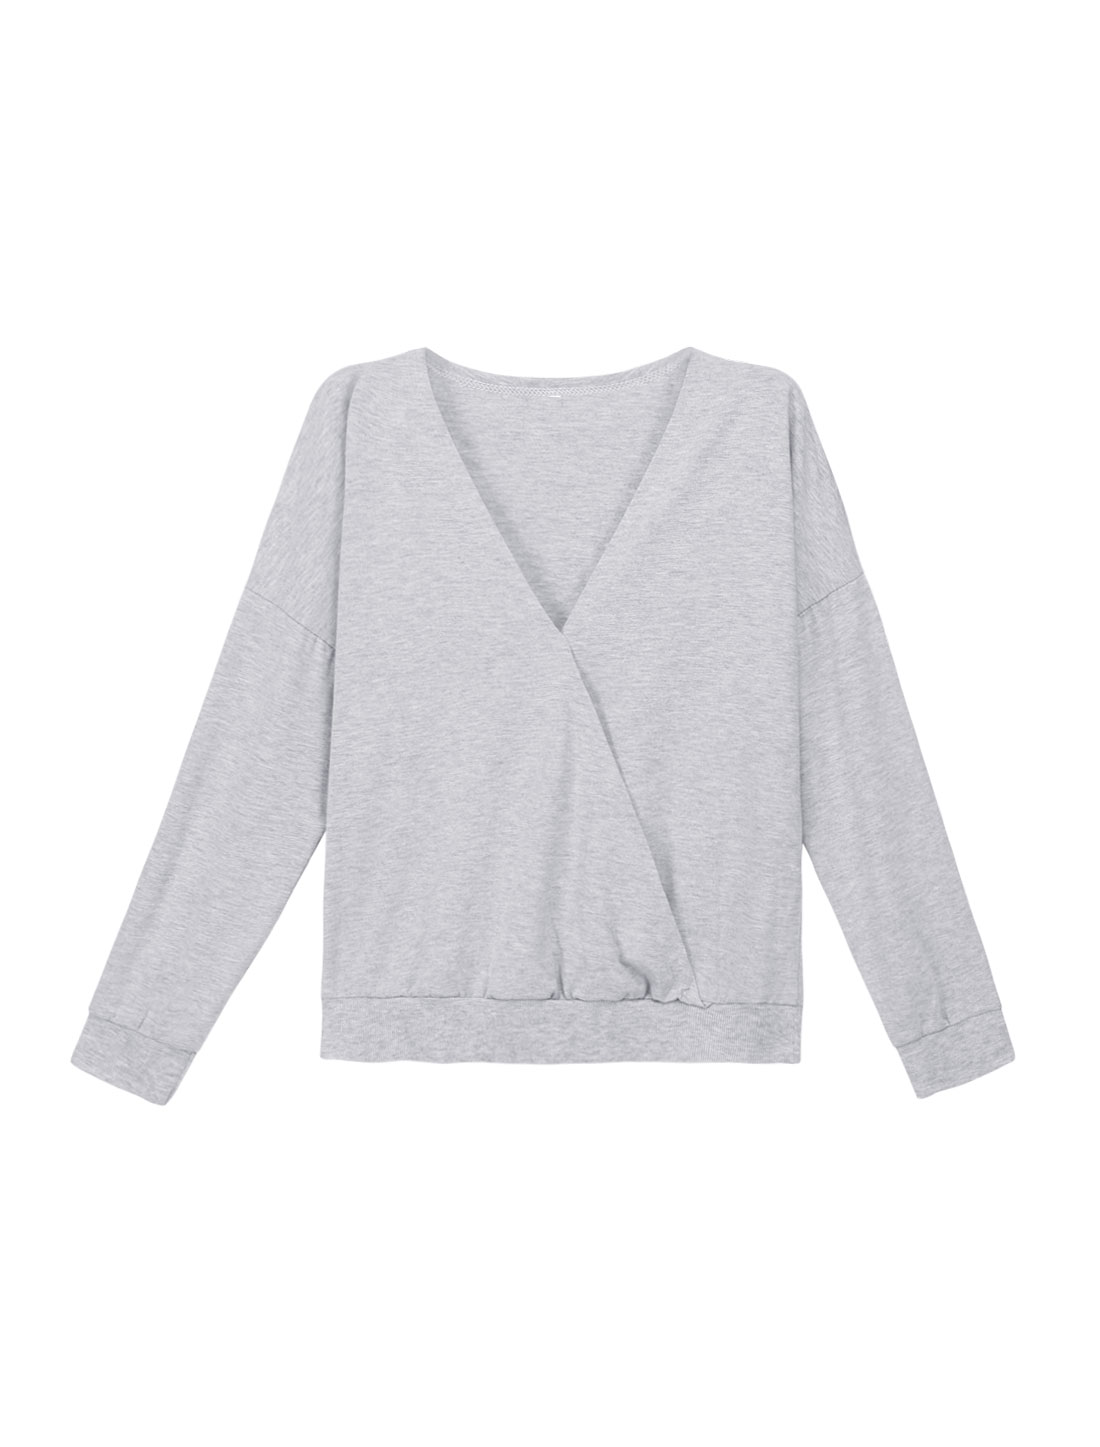 Women Deep V Neck Long Sleeves Crossover Front Loose Top Gray XS